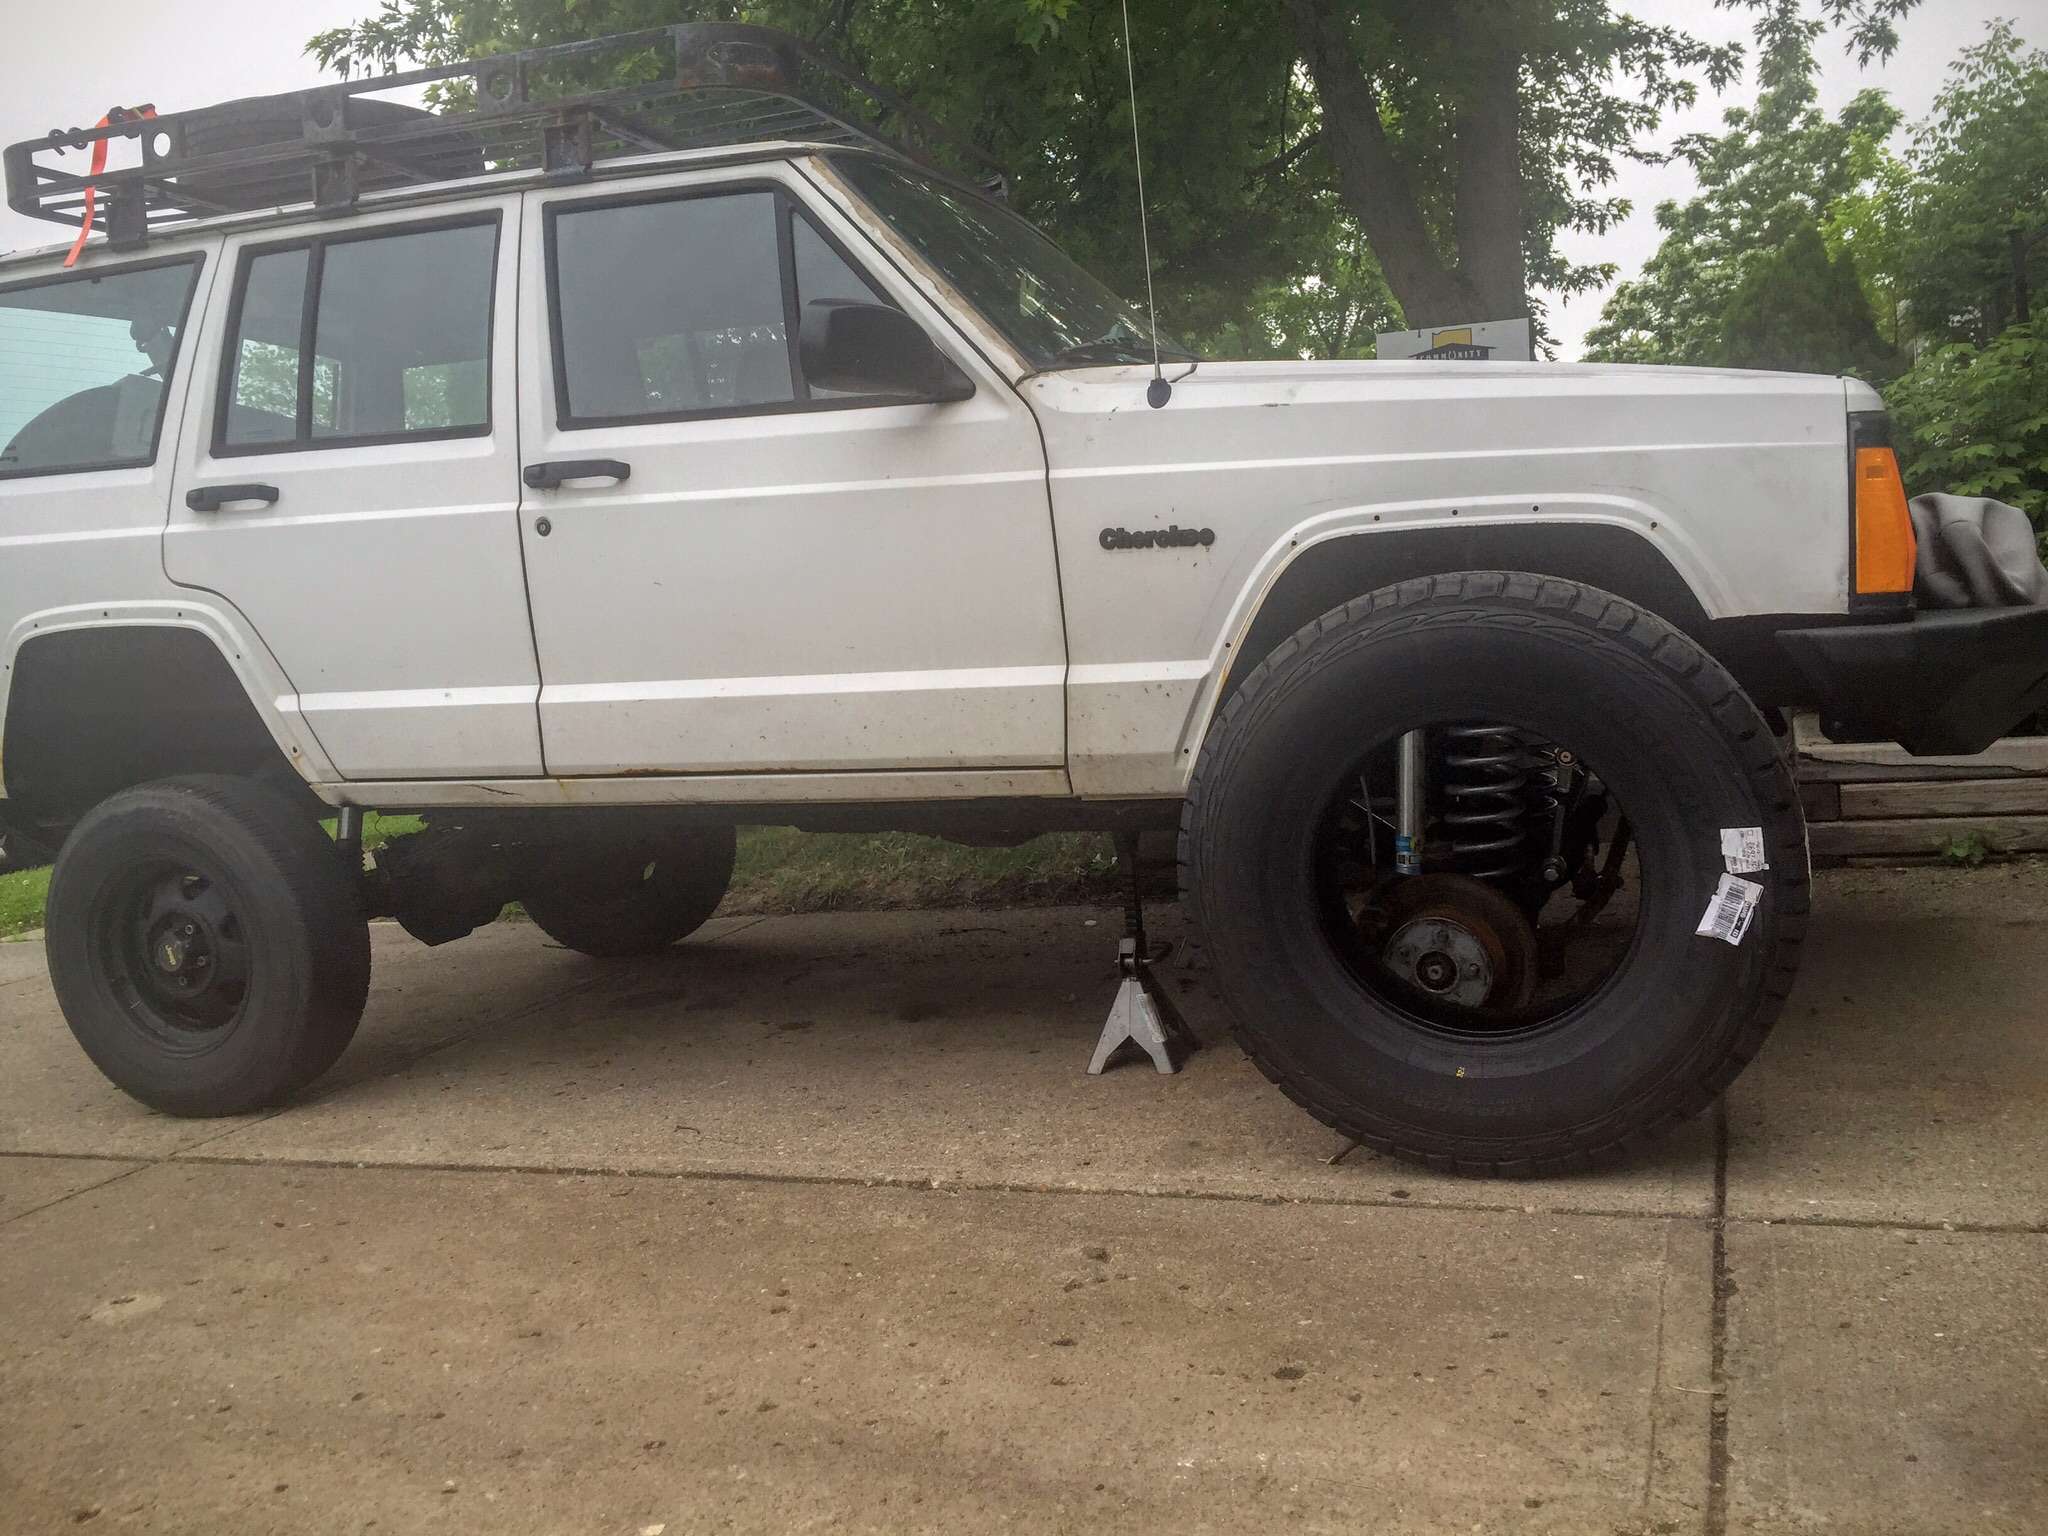 """Had to buy some beefy 33s (32.7"""") to mount on the new wheels. Ended up going with Cooper Discoverer ATPs."""